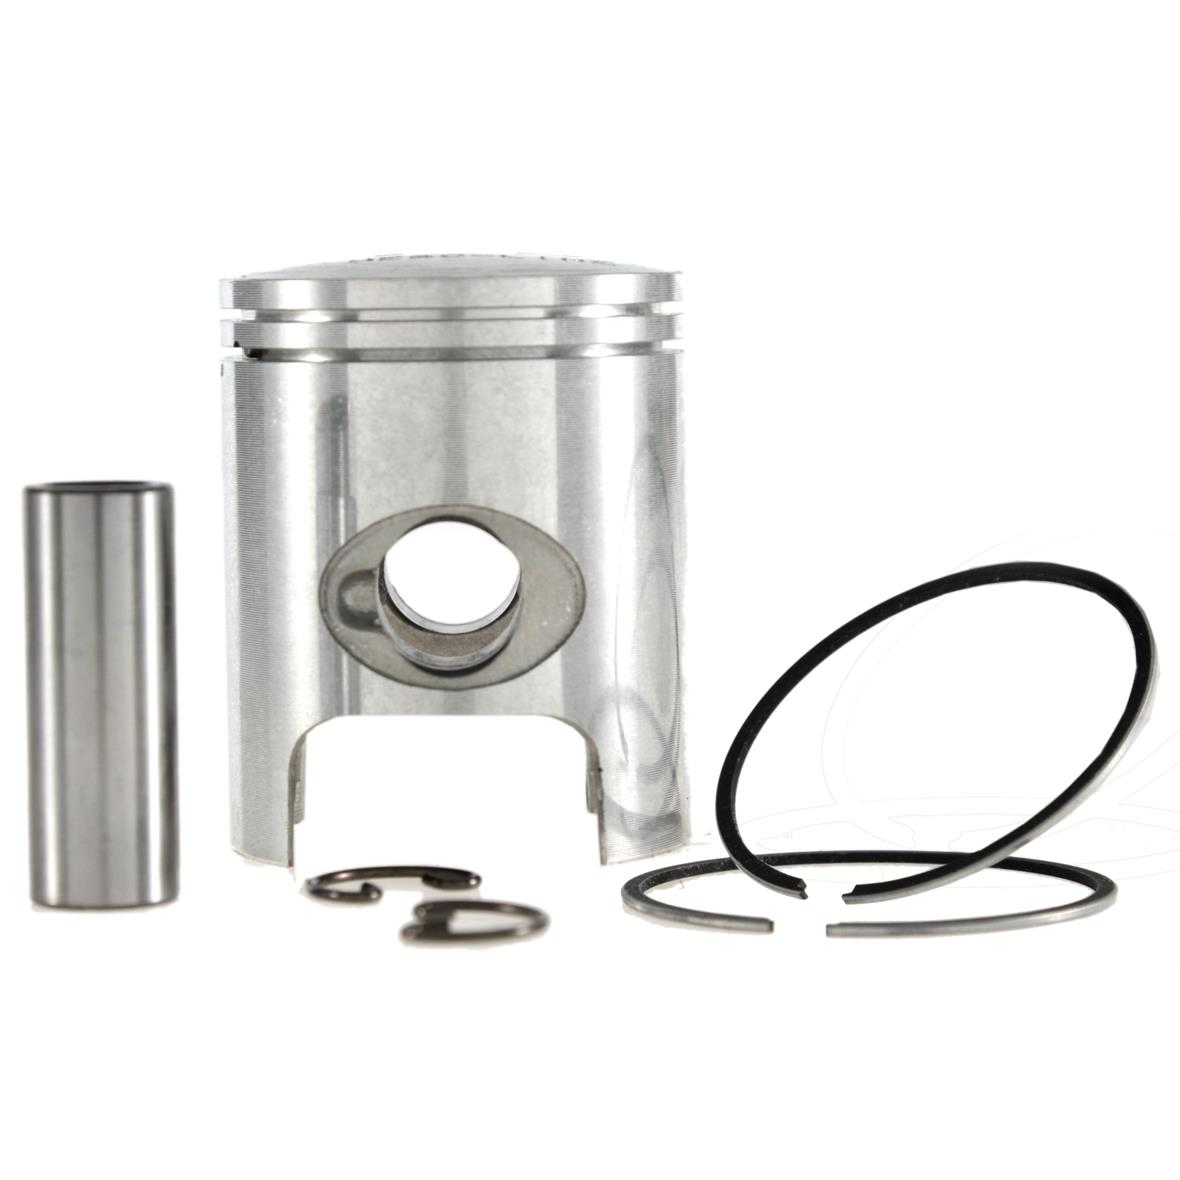 Product Image for 'Piston HEBO 50cc, d=40mmfor HR4000445NTitle'